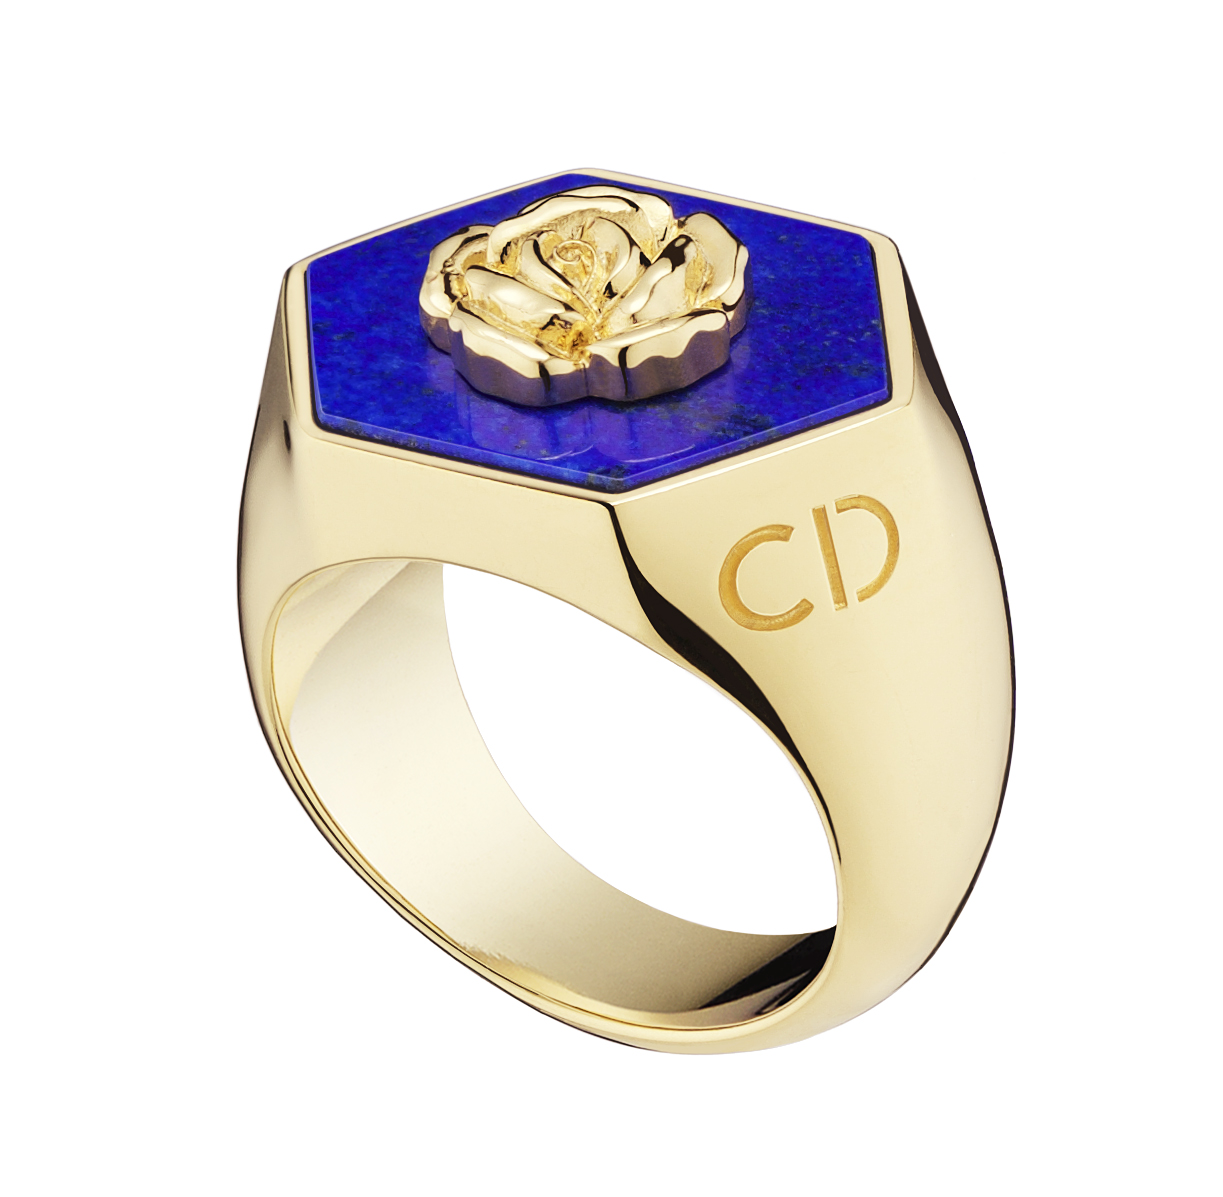 Lucky-Dior-Rose-pattern-ring-in-metal-with-gold-finish-and-lapis-lazuli